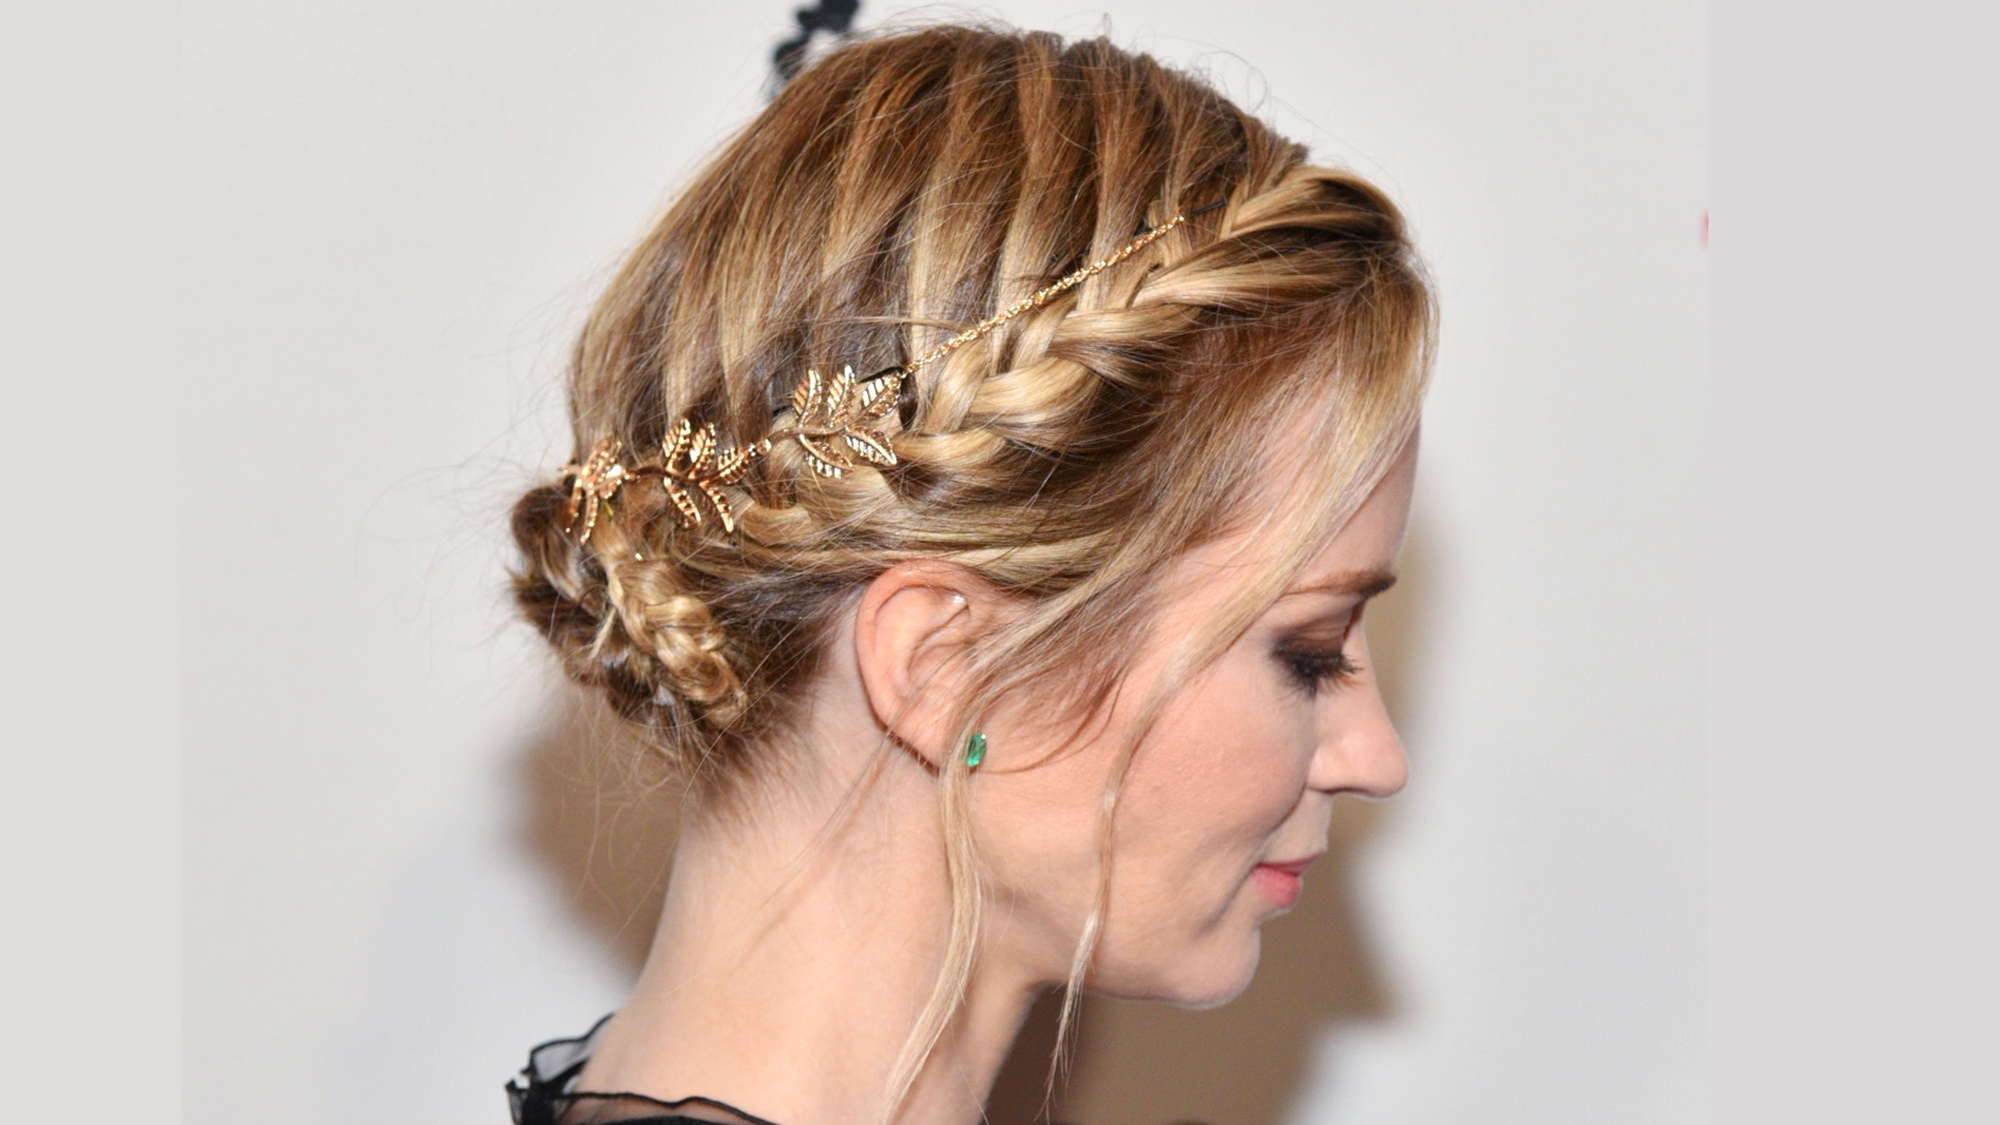 Plait Hairstyles To Take Straight To Your Hairdressers This Season